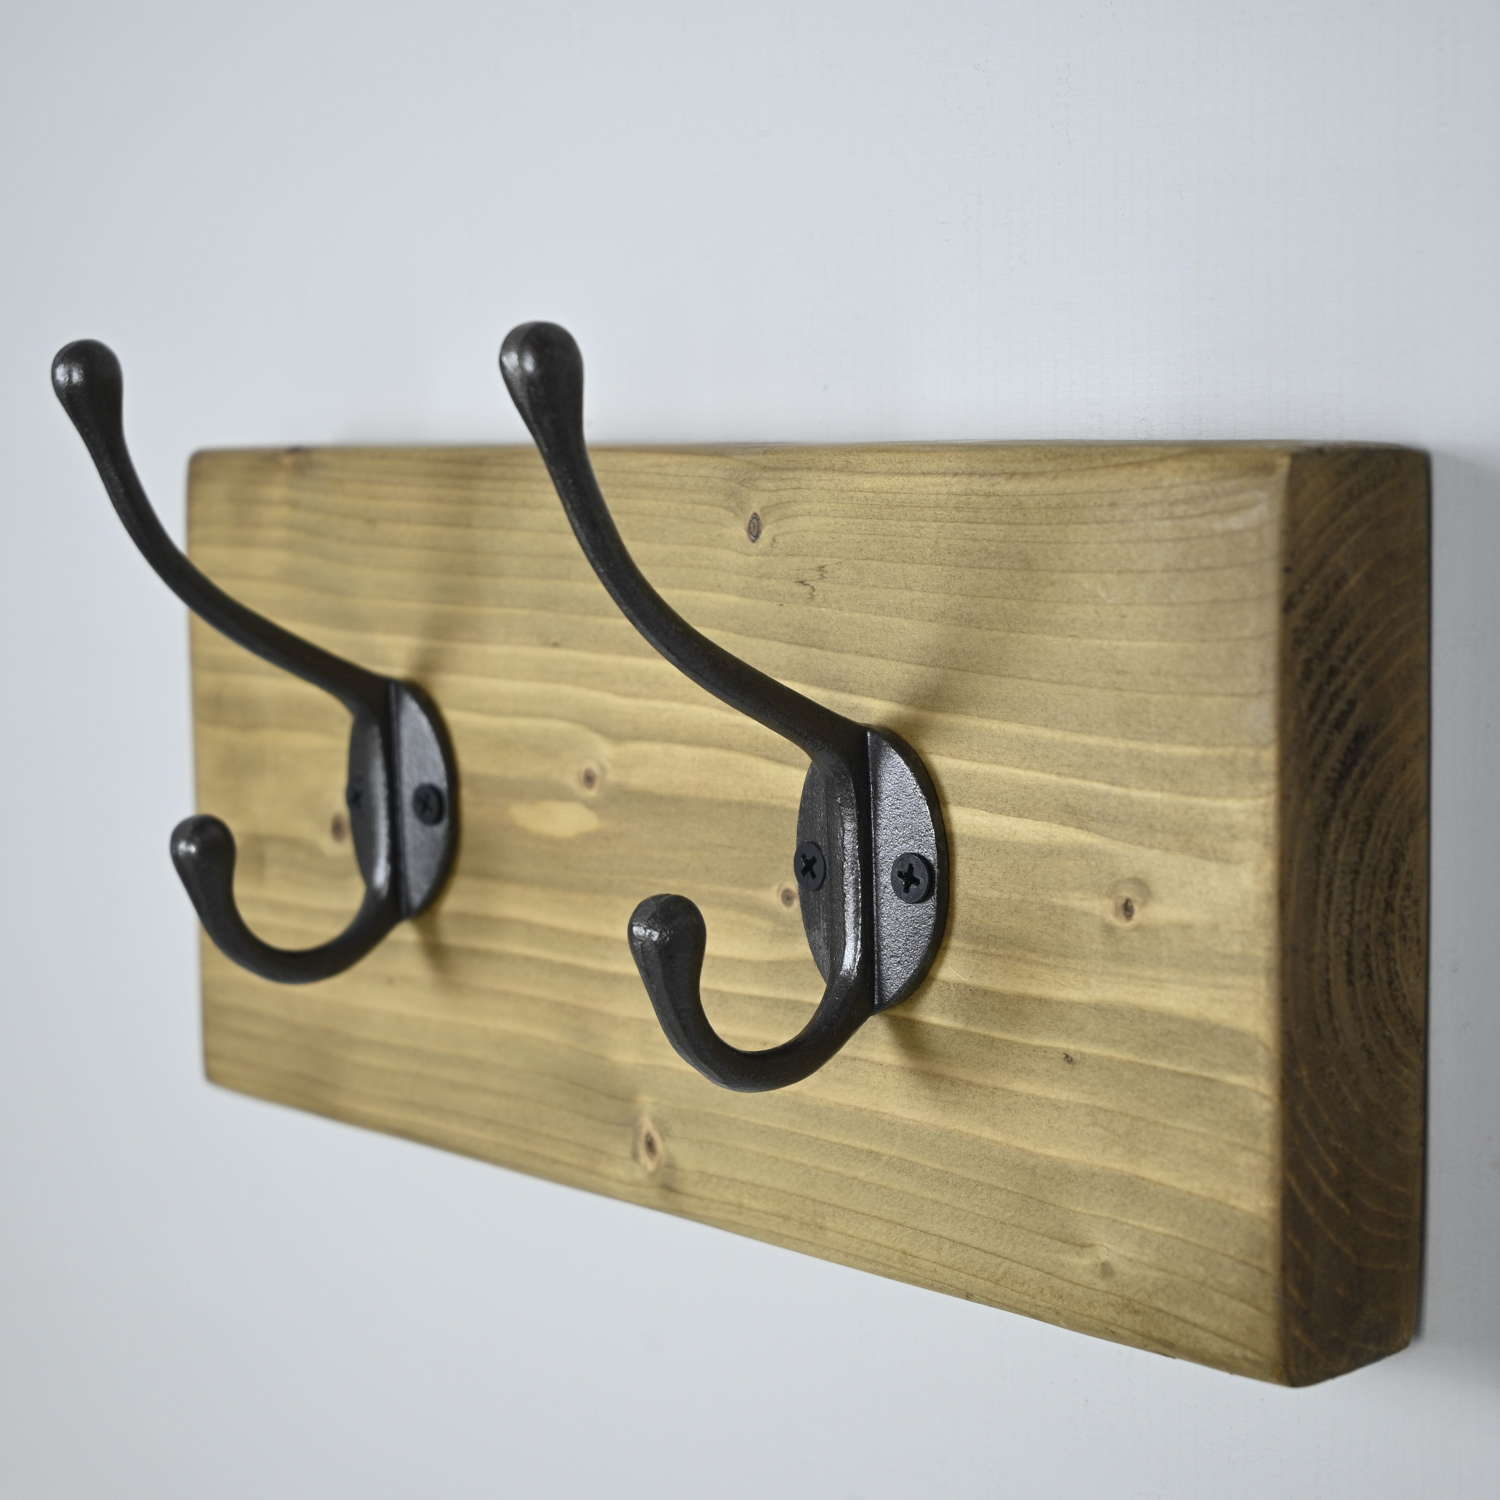 Rustic wall hanging coat rack with two cast Iron hooks